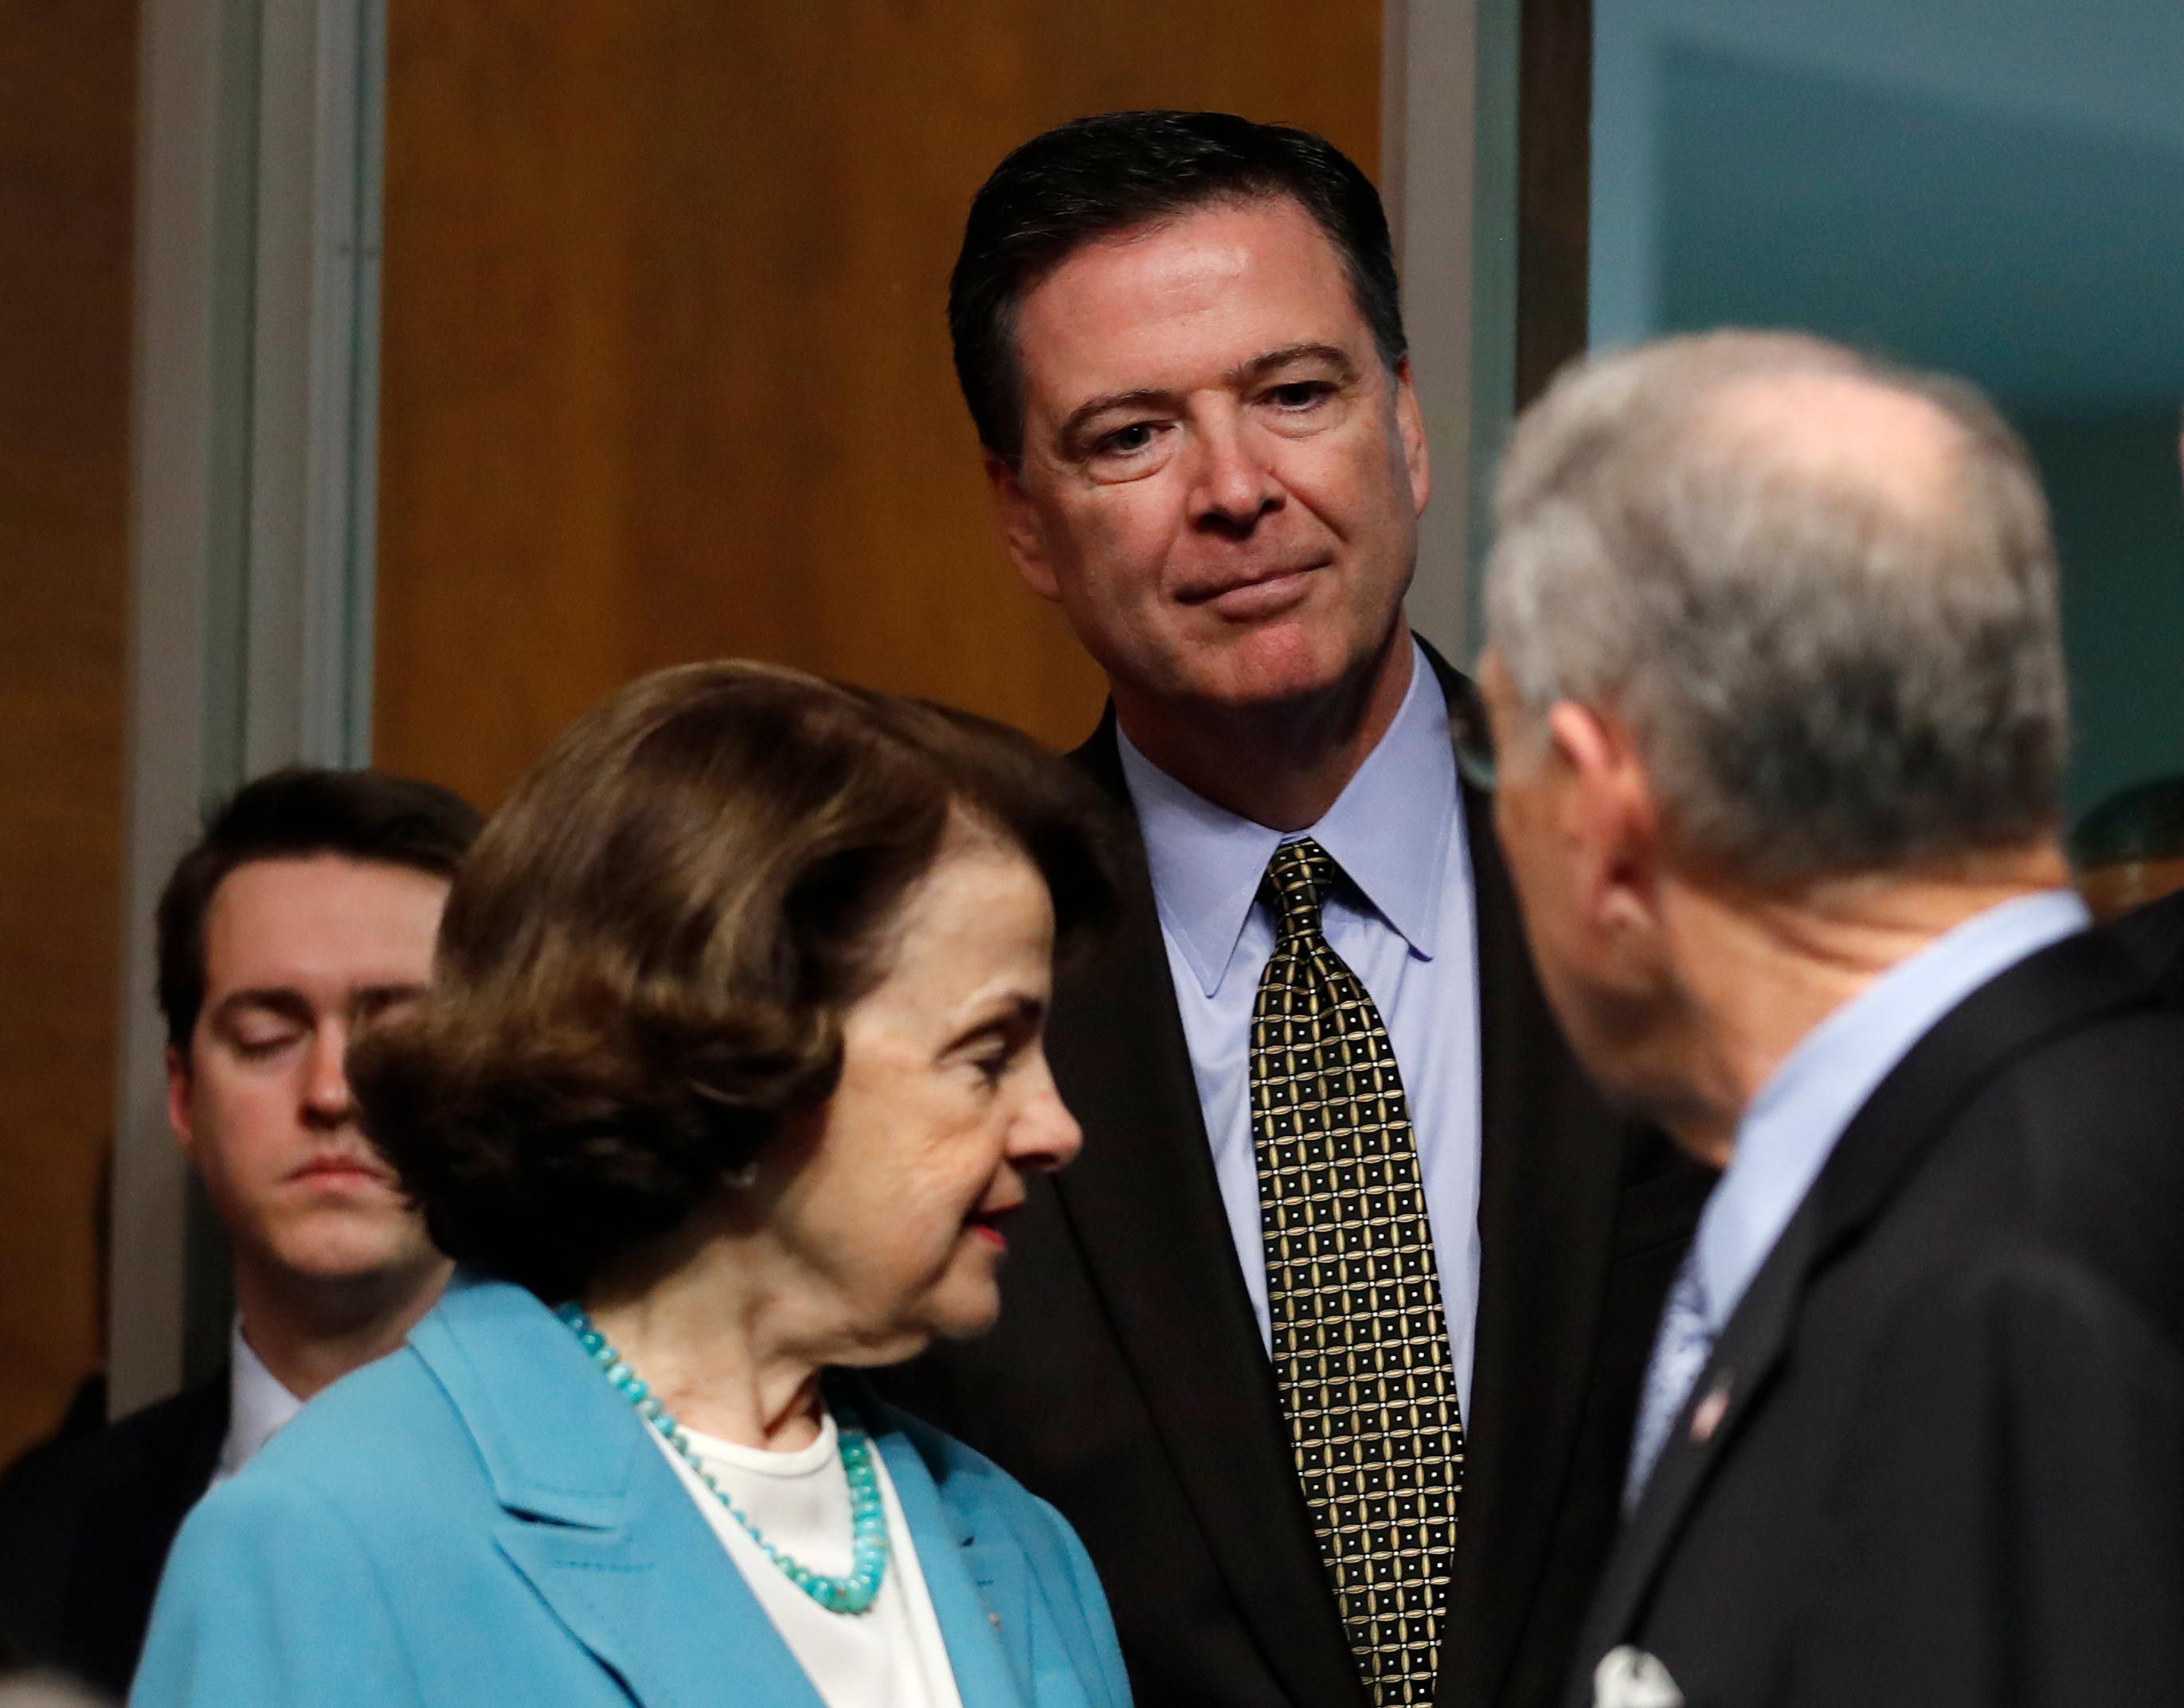 "FBI Director James Comey, flanked by Senate Judiciary Committee Chairman Sen. Charles Grassley, R-Iowa, right, and the committee's ranking member Sen. Dianne Feinstein, D-Calif., arrives on Capitol Hill in Washington, Wednesday, May 3, 2017, to testify before the committee's hearing: ""Oversight of the Federal Bureau of Investigation."" (AP Photo/Carolyn Kaster)"